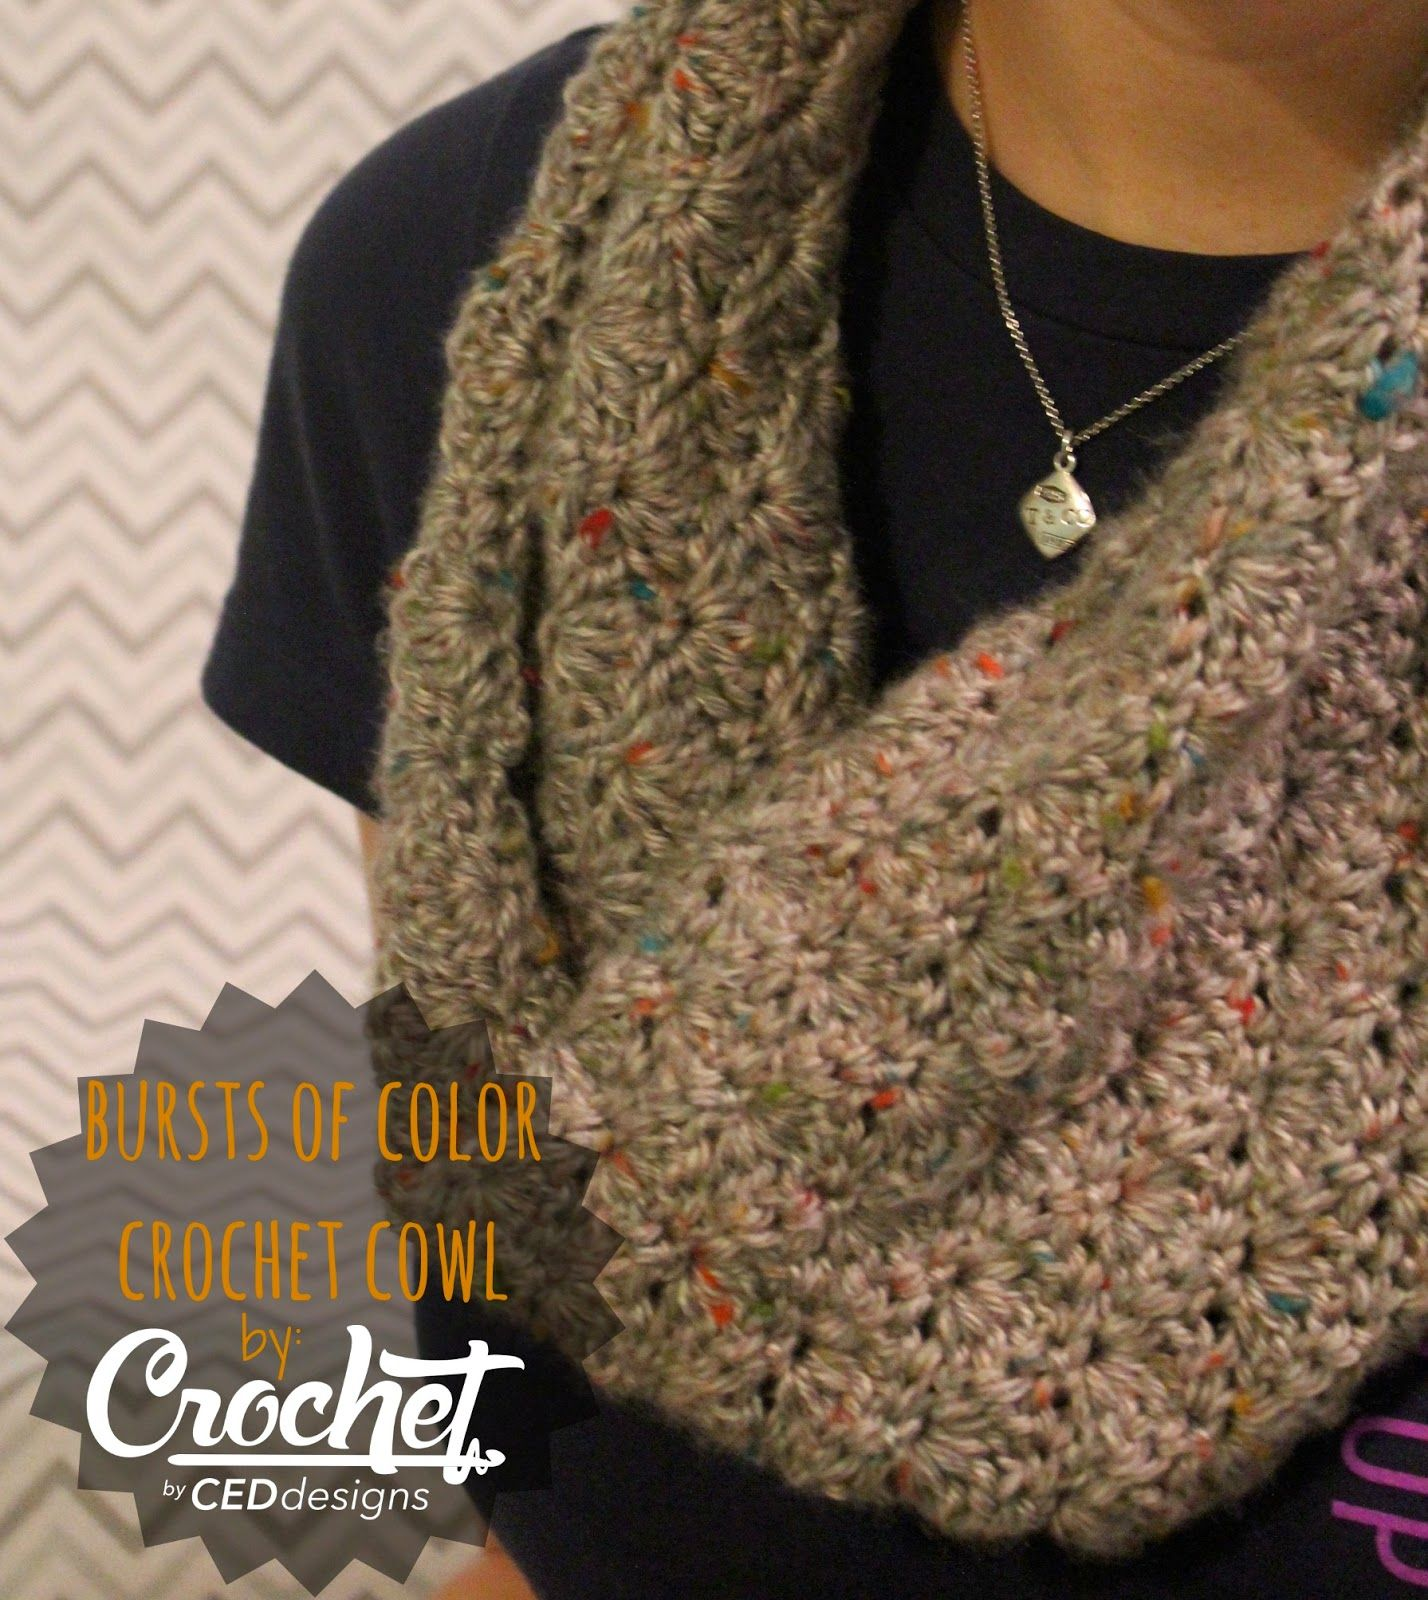 CEDdesigns: bursts of color crochet cowl--FREE Pattern